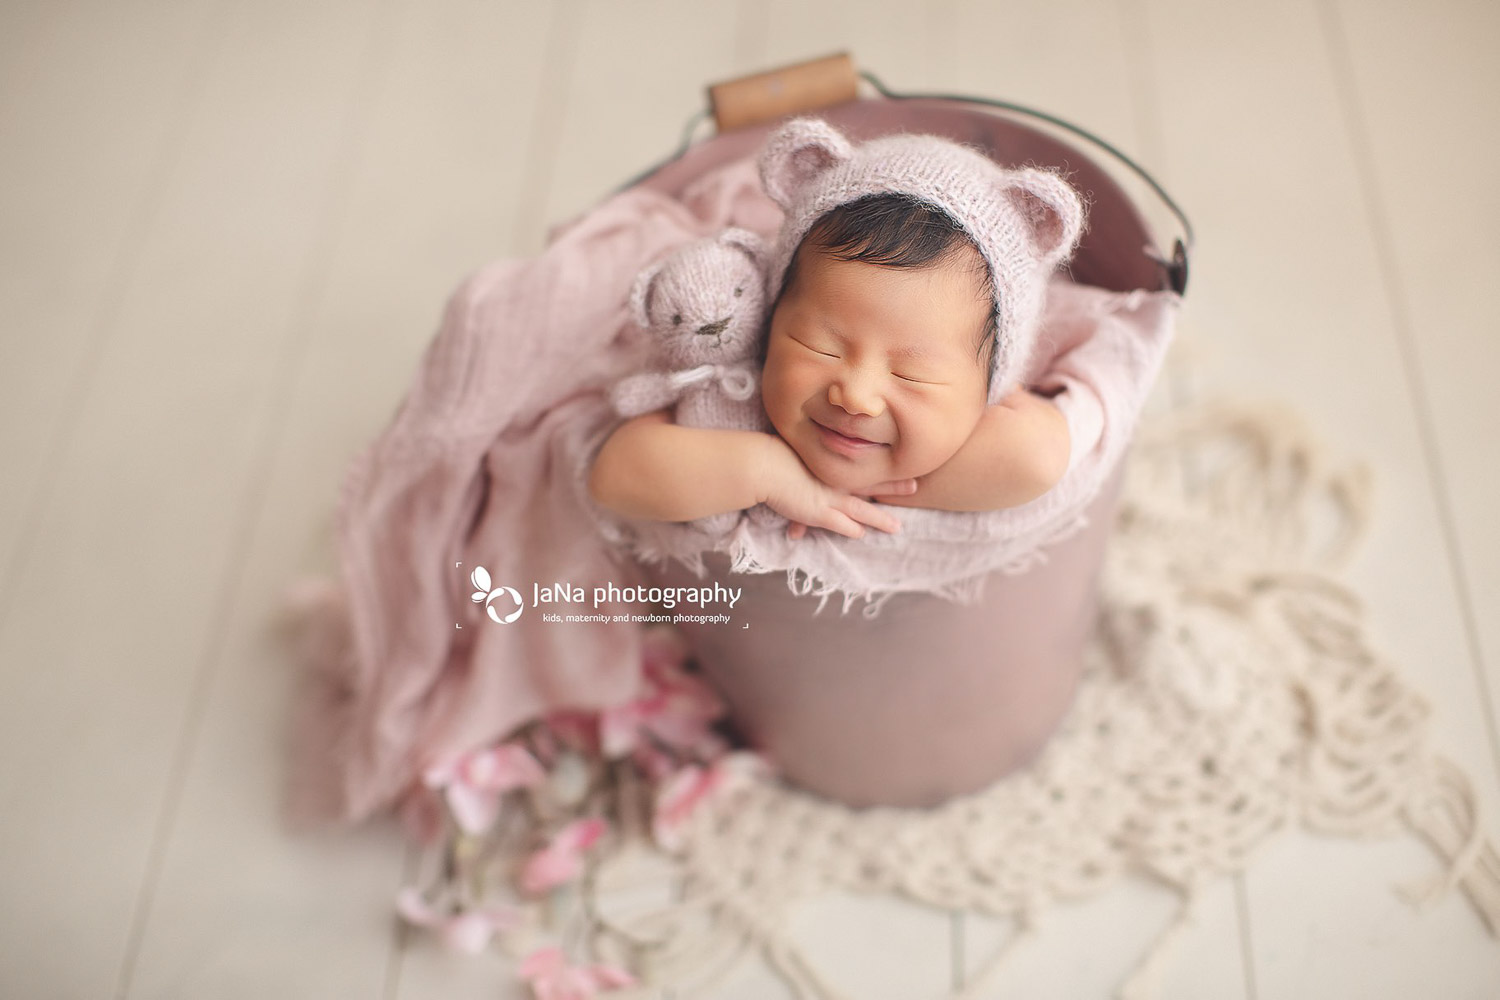 newborn baby girl in a pink bucket smiling | jana photography